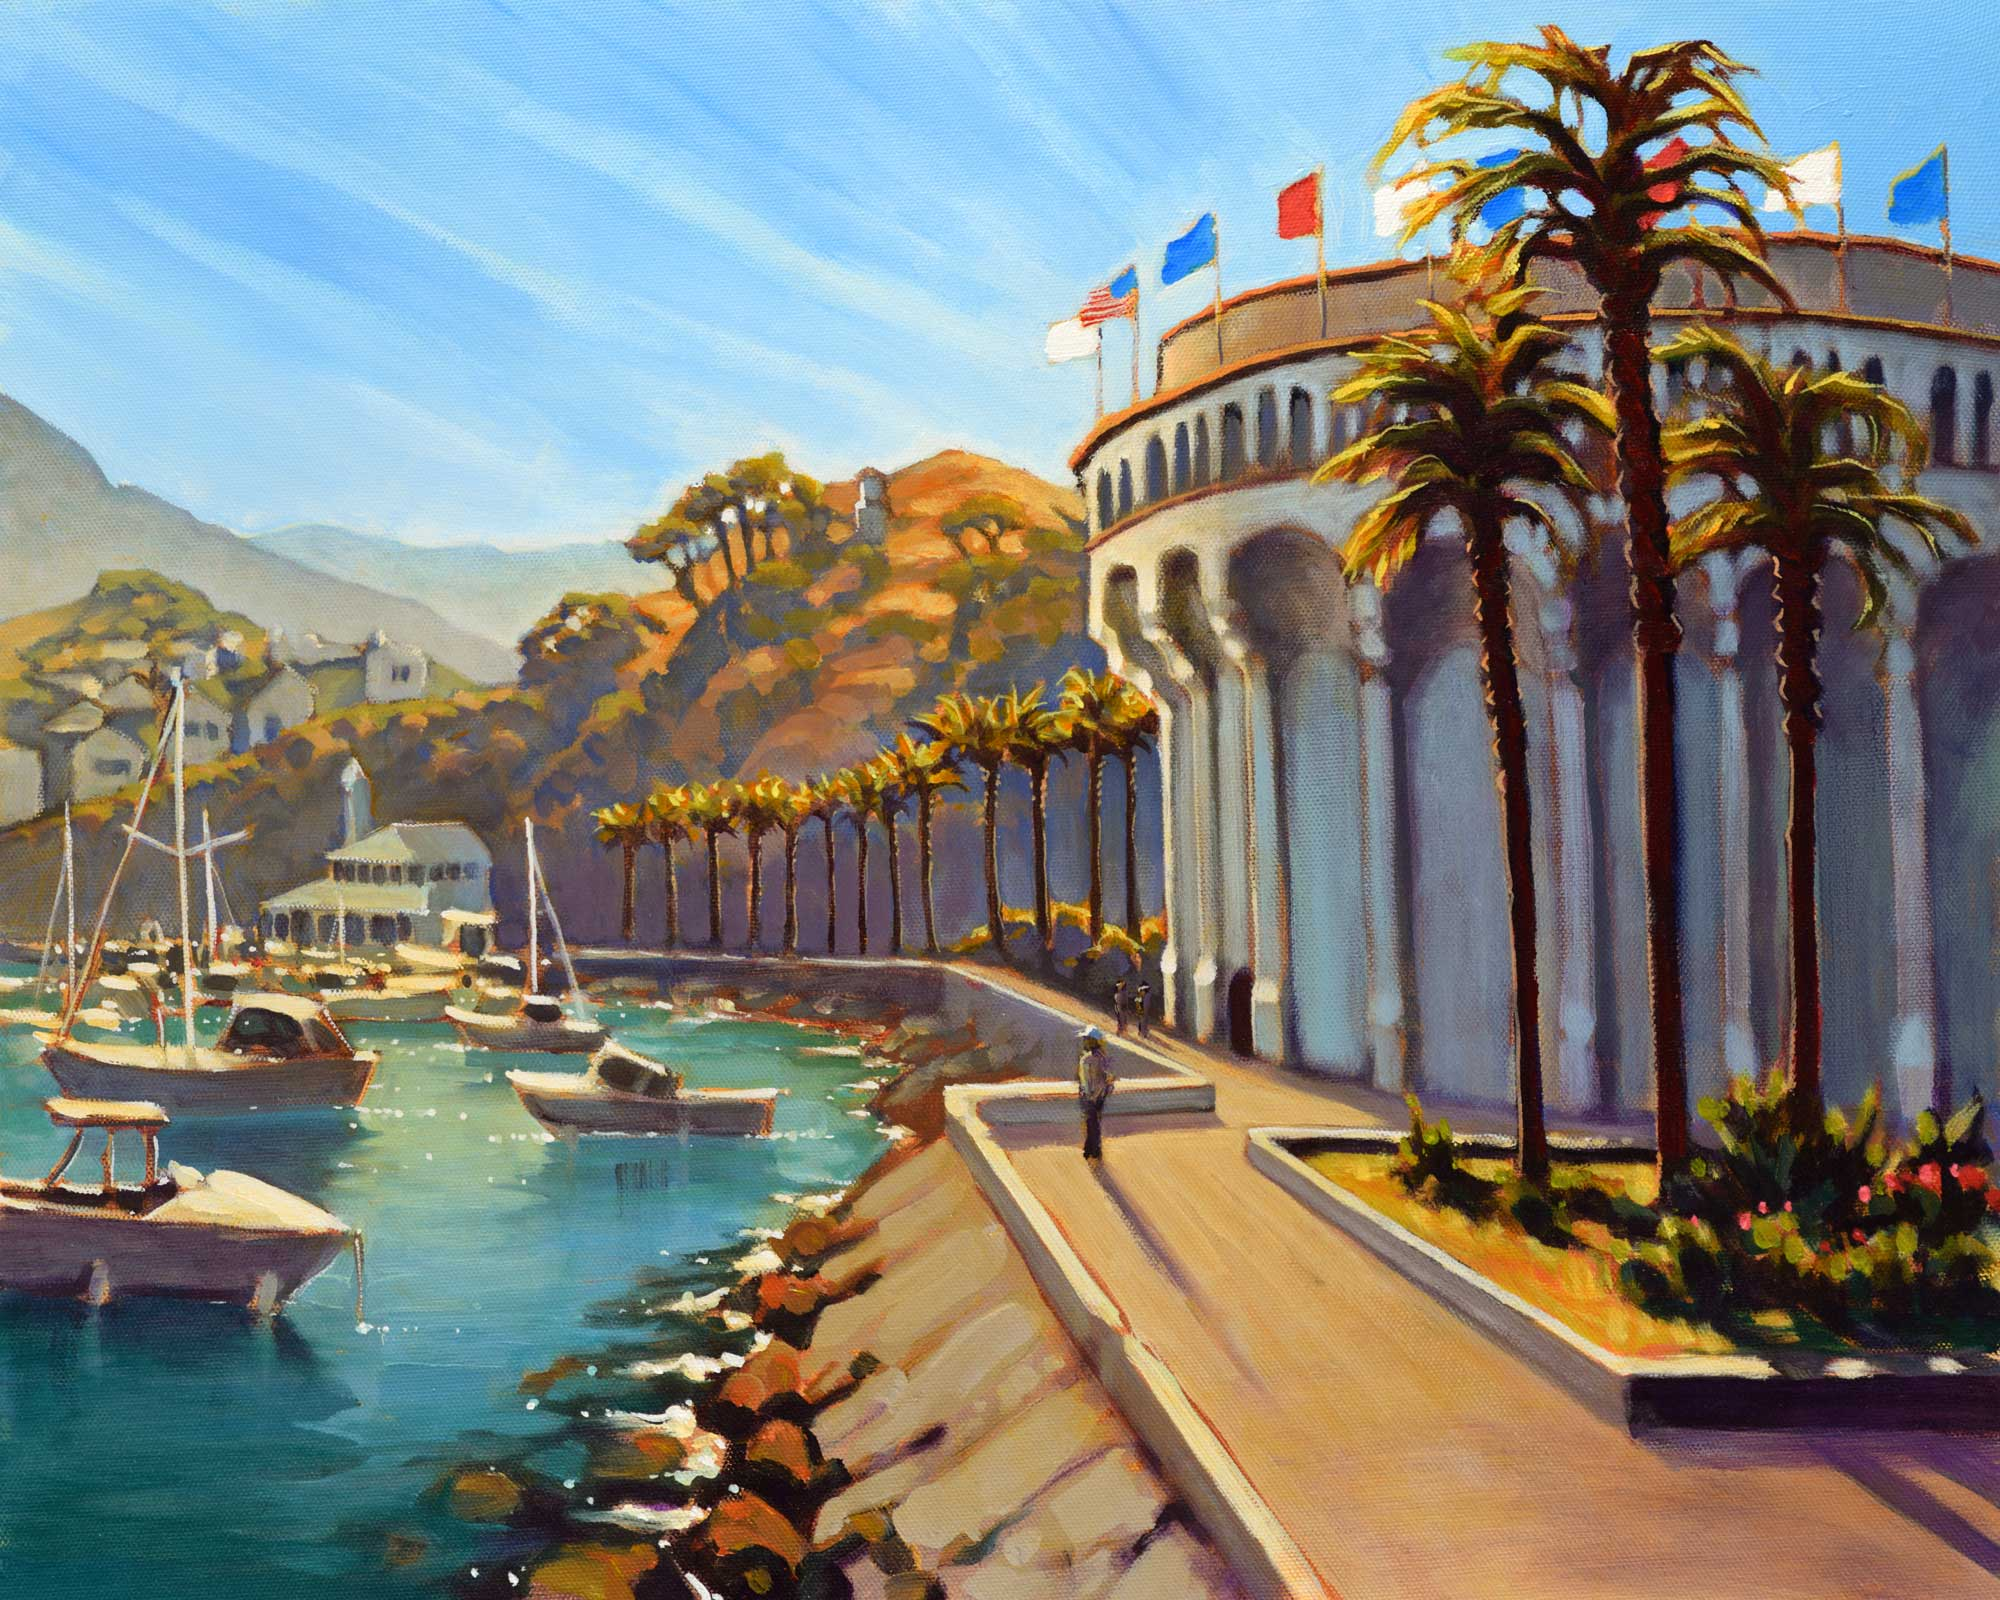 A plein air painting of the Casino building at Avalon Harbor on Catalina island off the coast of southern California